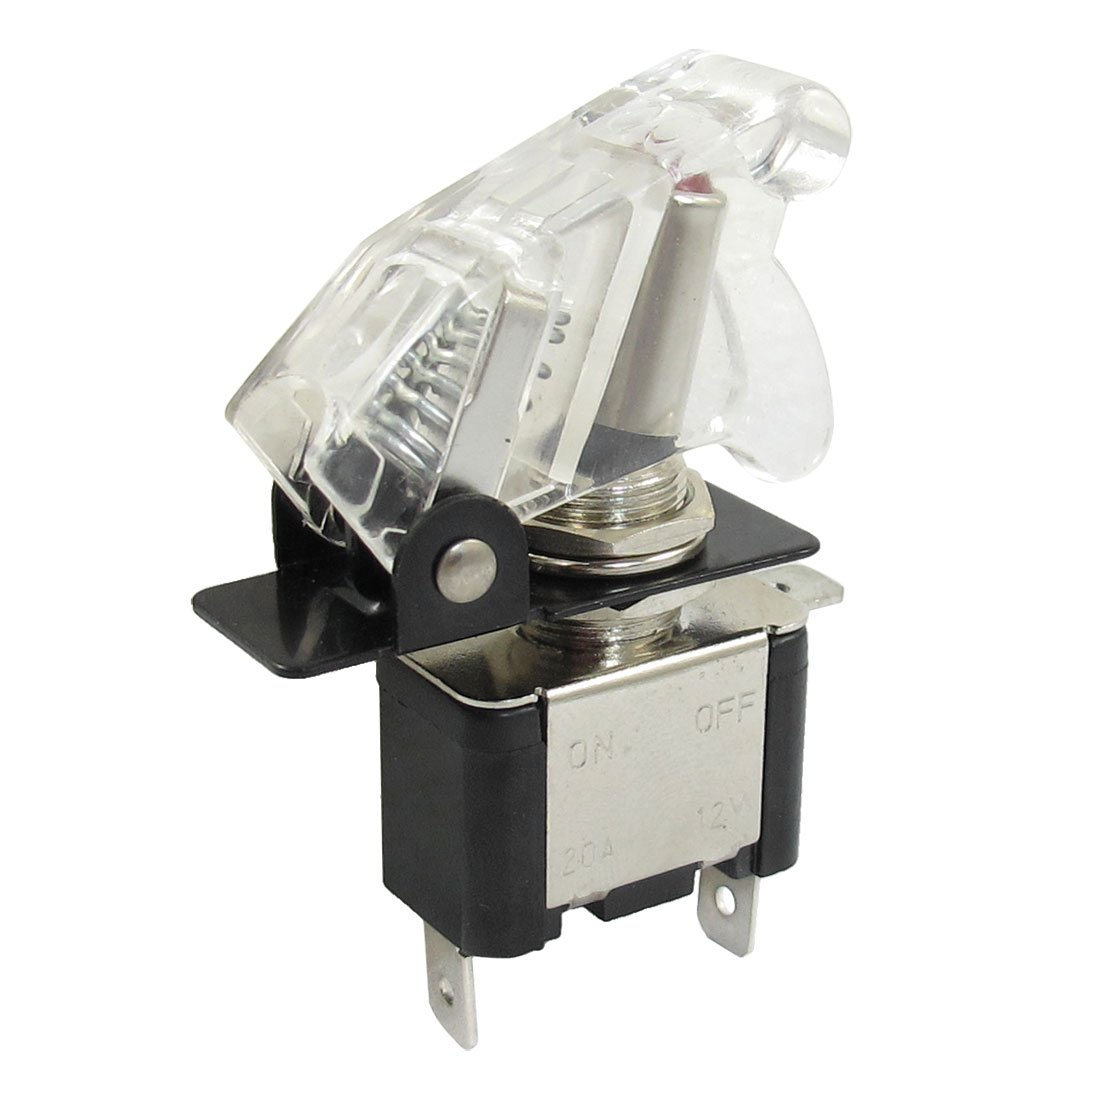 DC 20A 12V SPST 2 Position ON OFF Toggle Switch w Green Flipw w Clear Cap a13011000ux0134